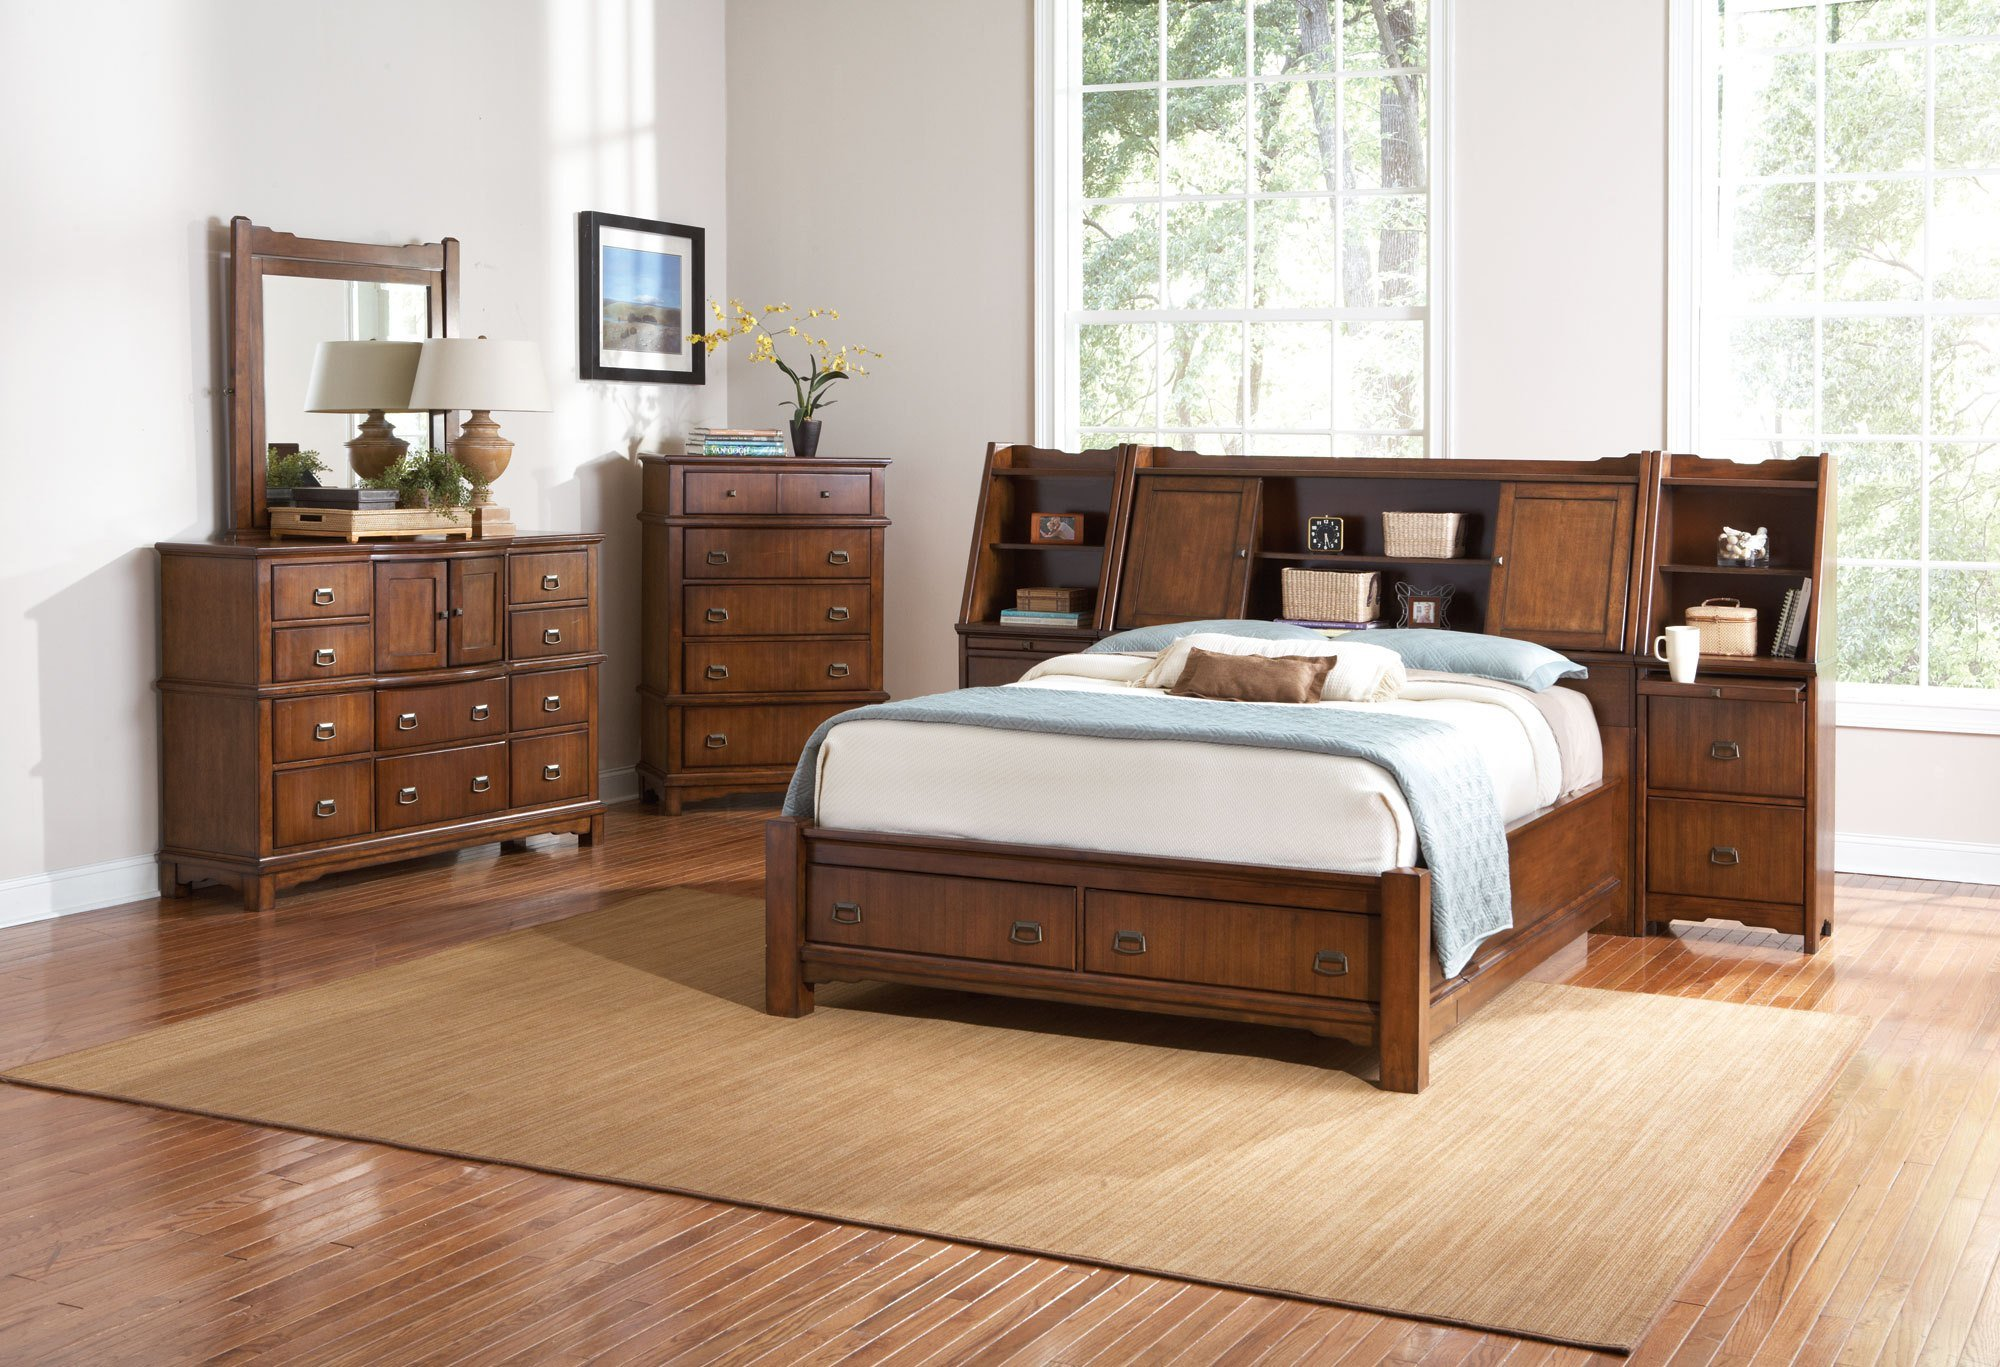 Best Mission Style Bedroom Furniture Plans With Stylish With Pictures